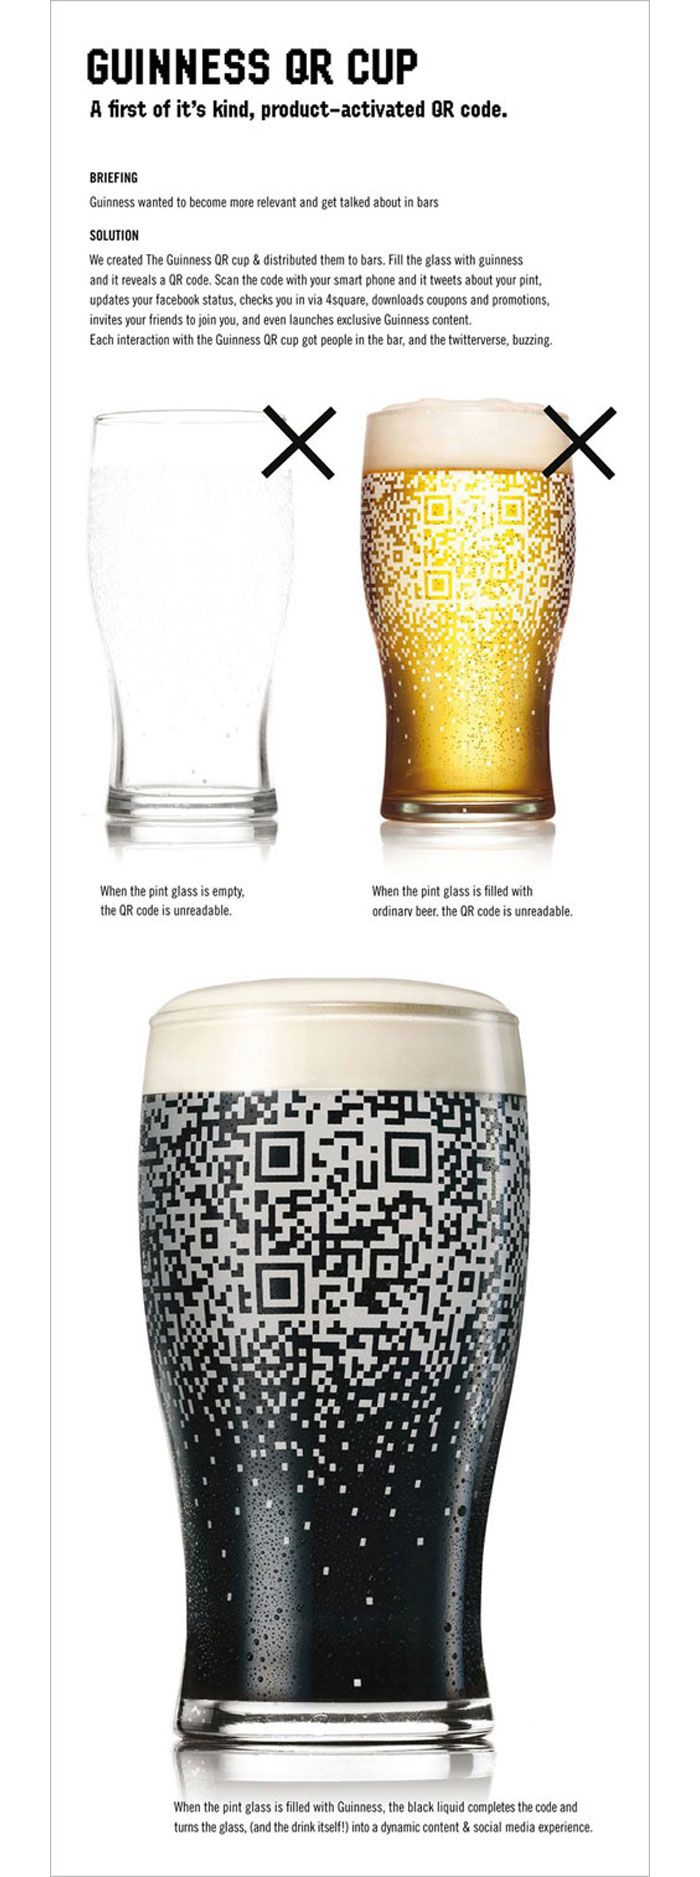 Guinness Qr Cup Guinness Creative Advertising Coding